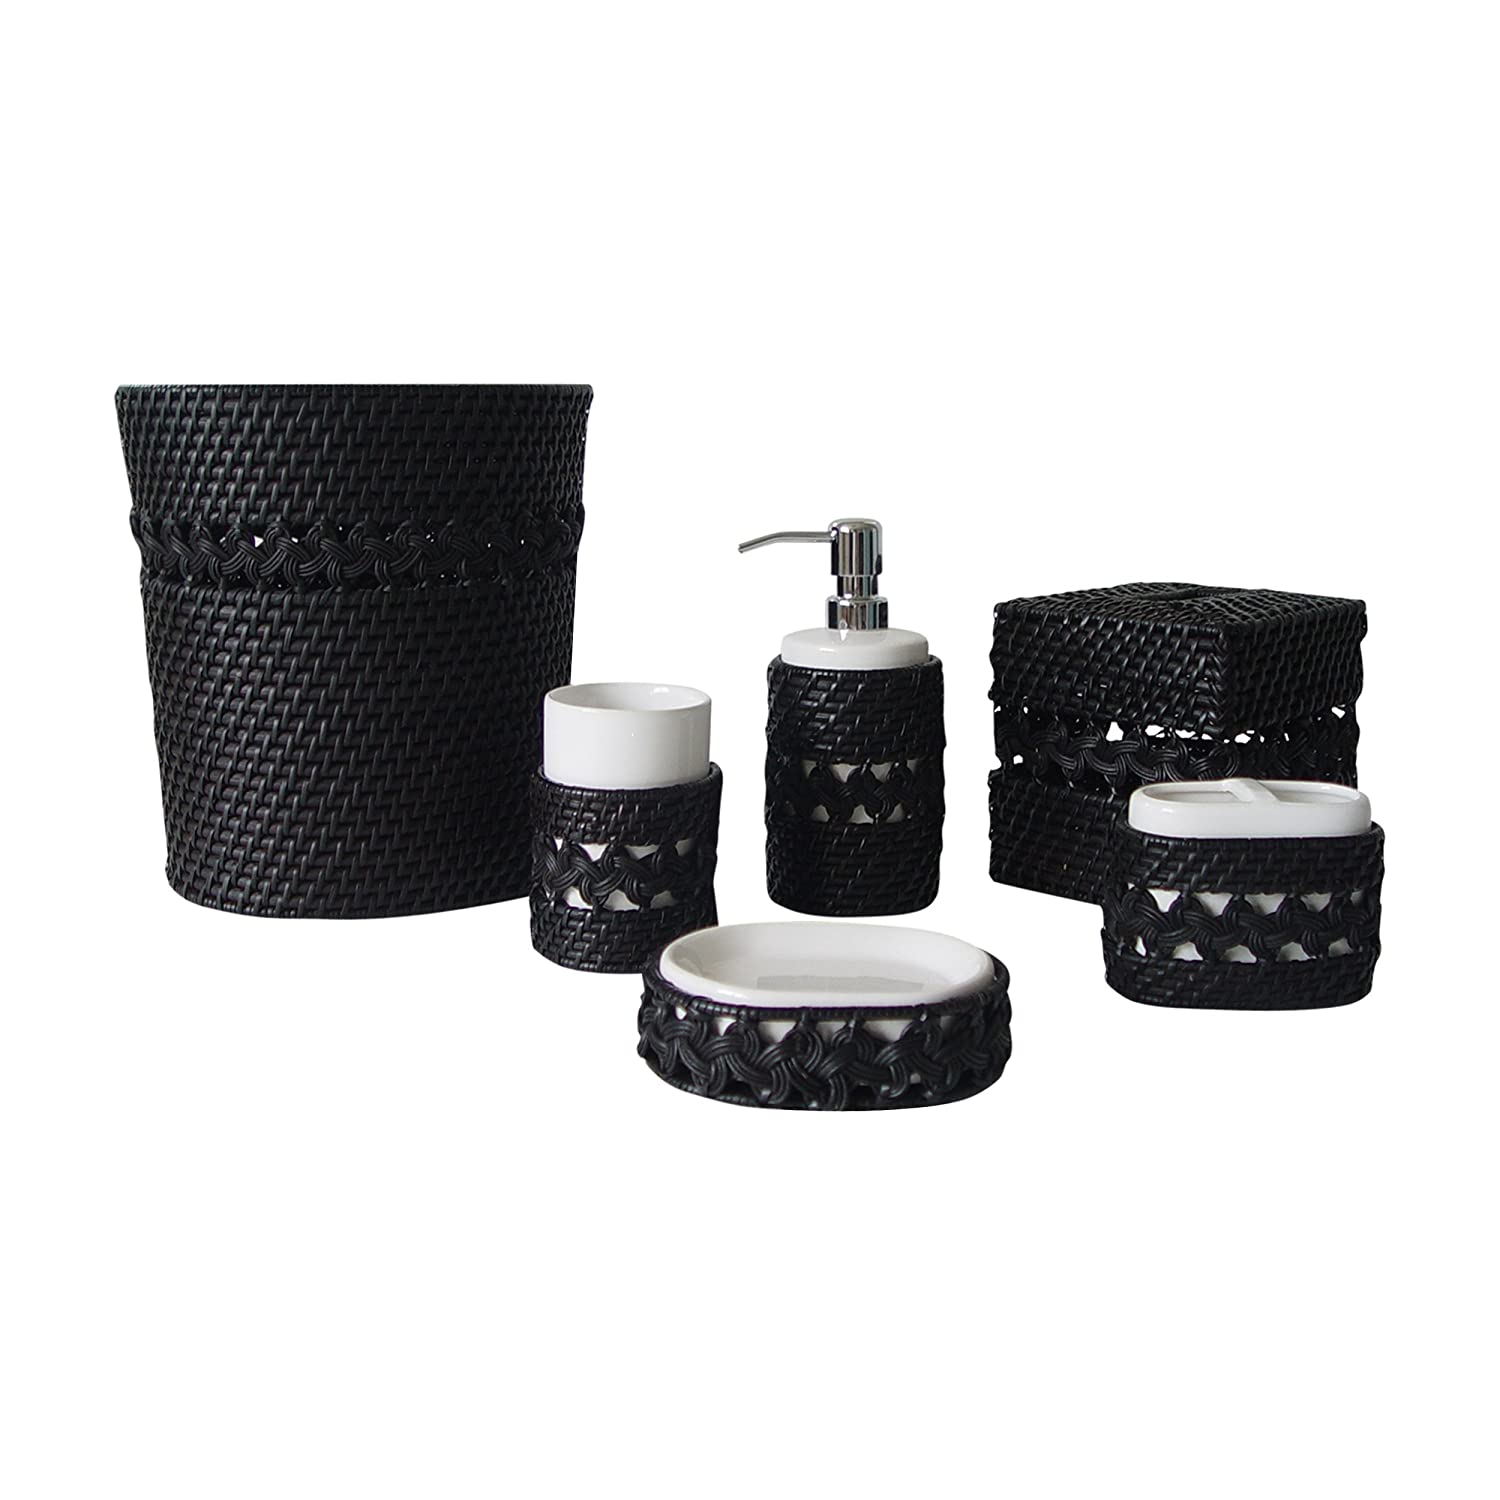 Bathroom Hardware Sets Black : Lastest Purple Bathroom Hardware Sets ...